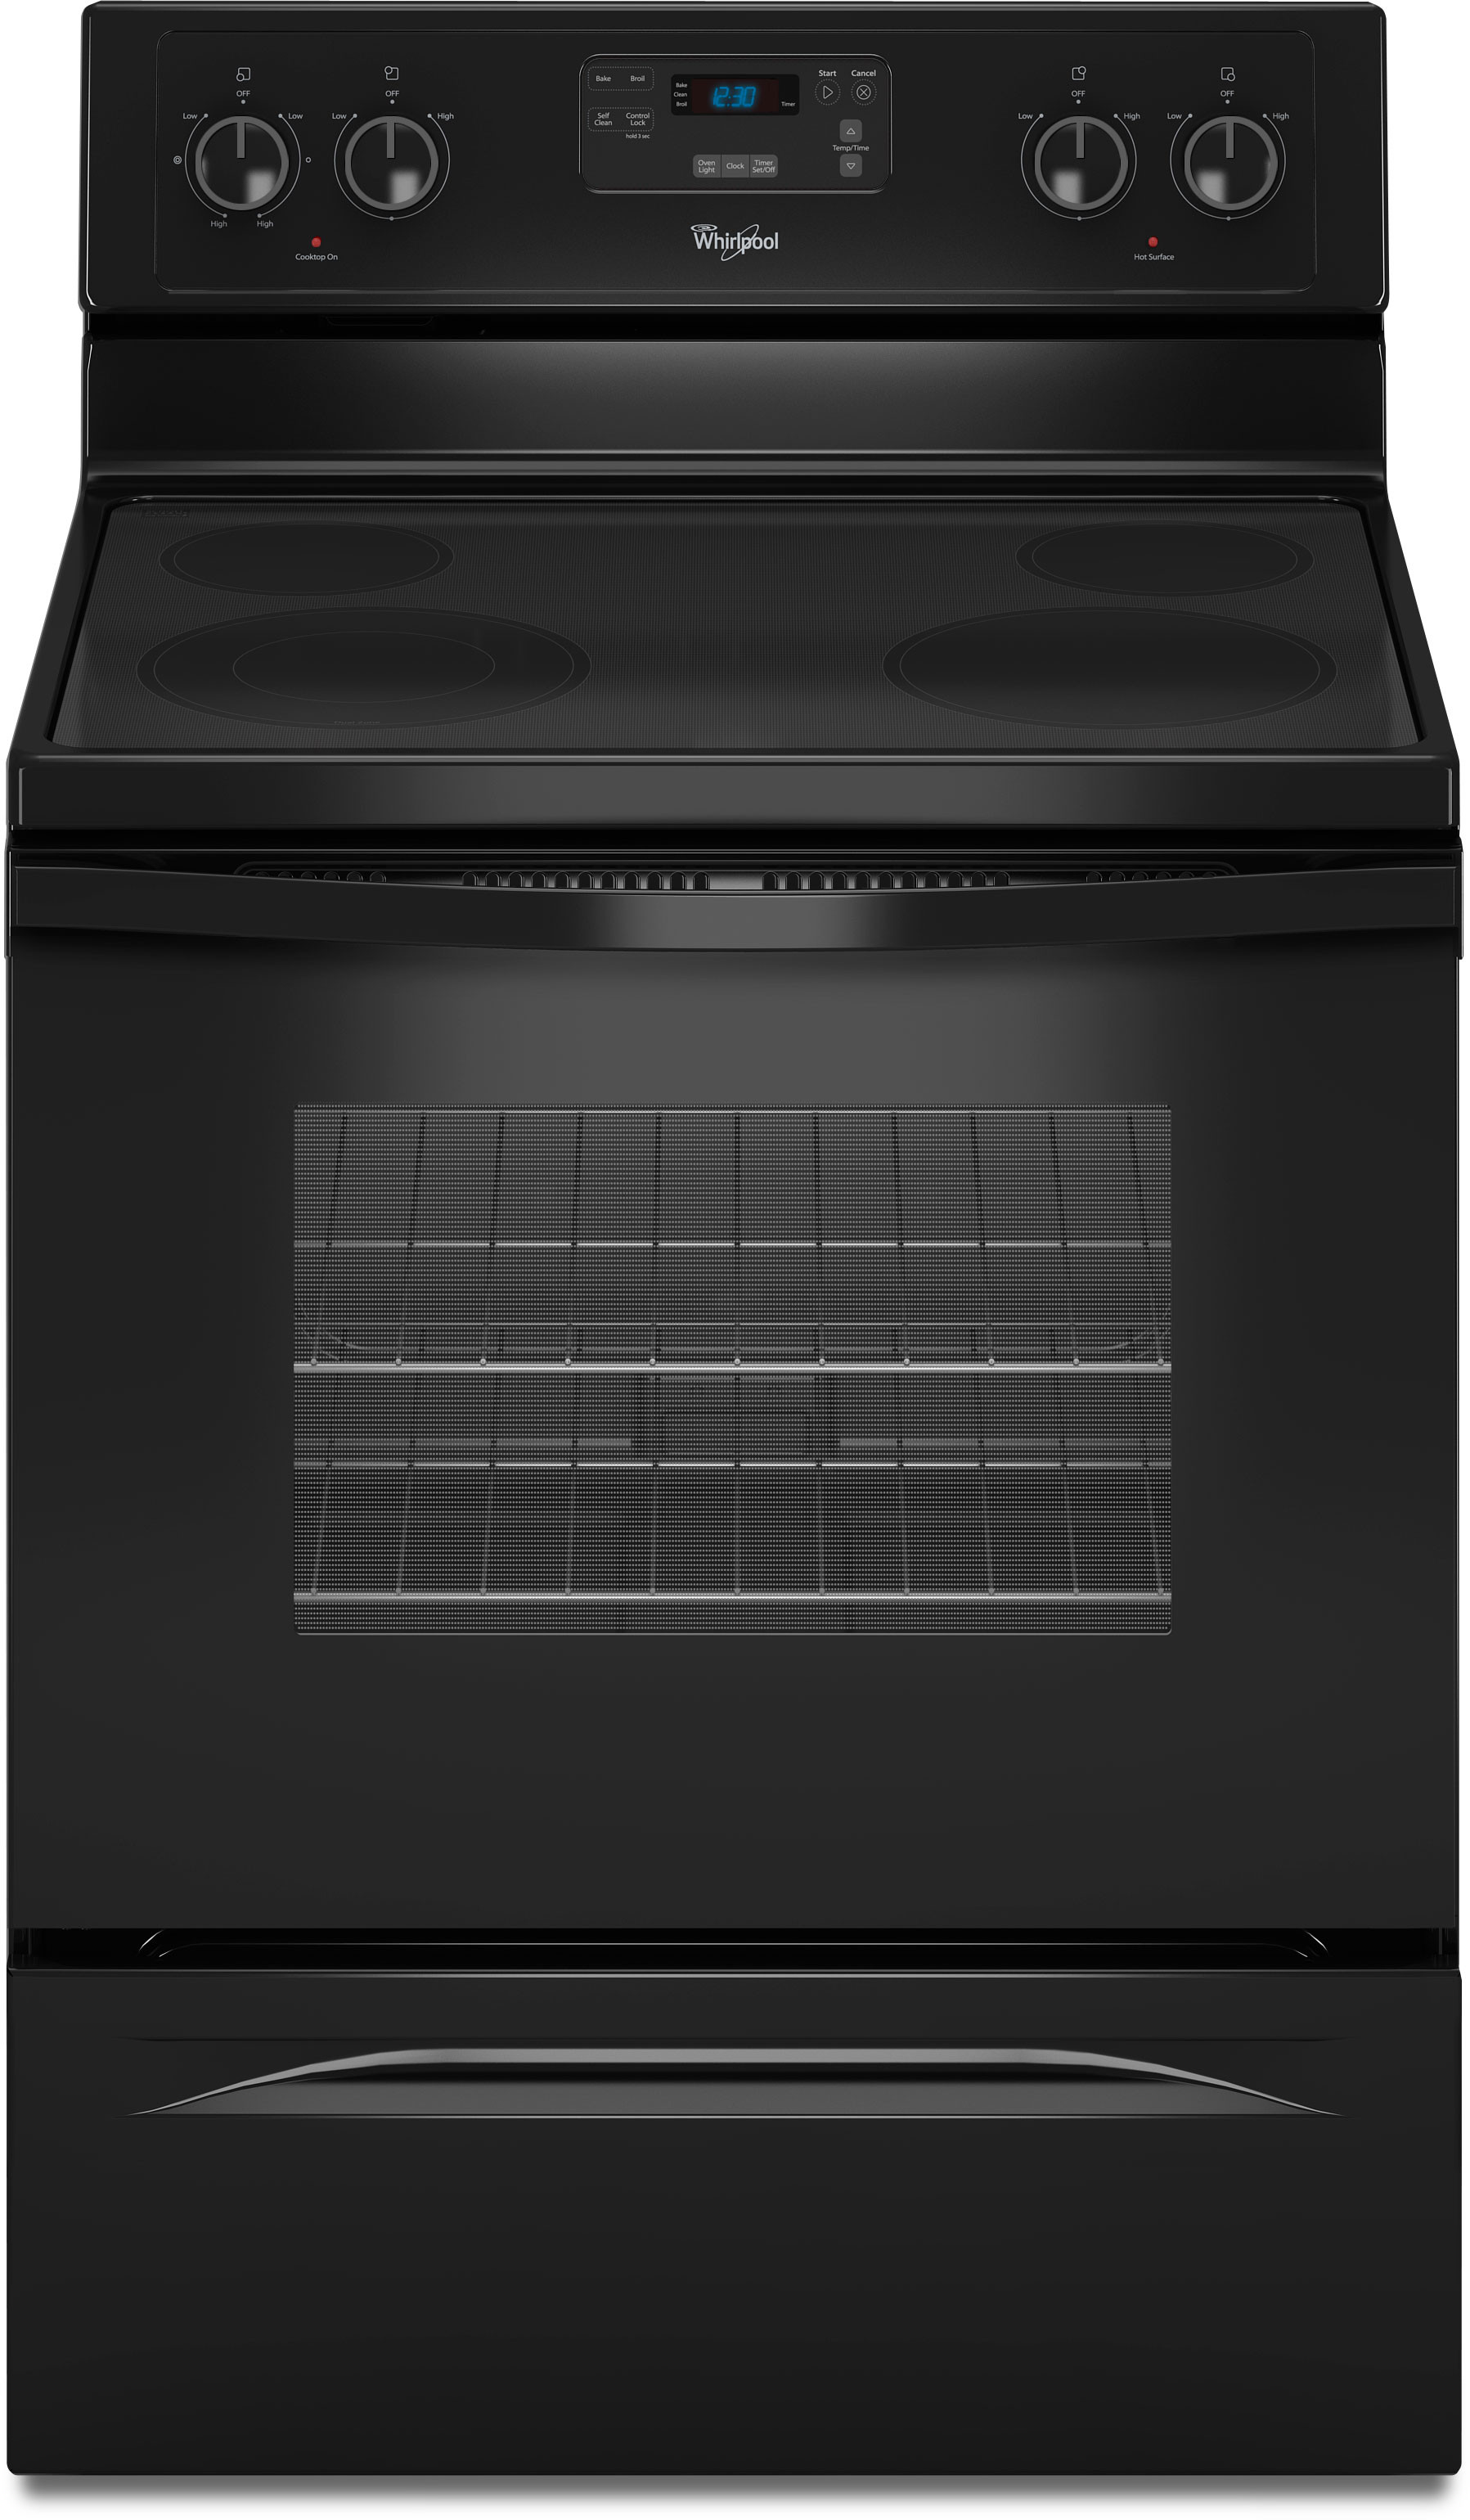 Whirlpool Wfe510s0ab 30 Inch Freestanding Smoothtop